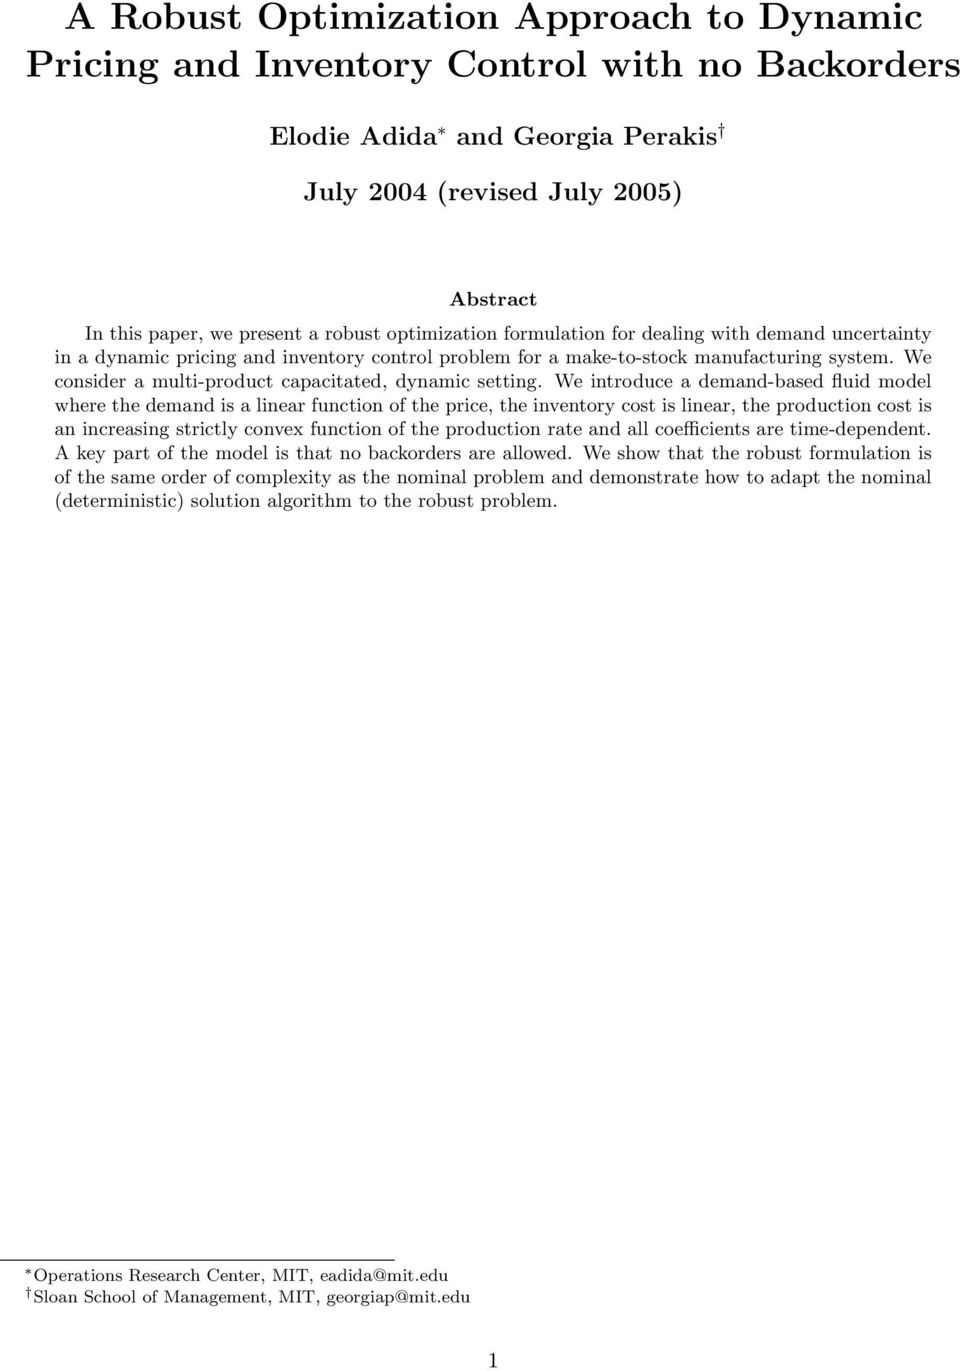 A Robust Optimization Approach to Dynamic Pricing and